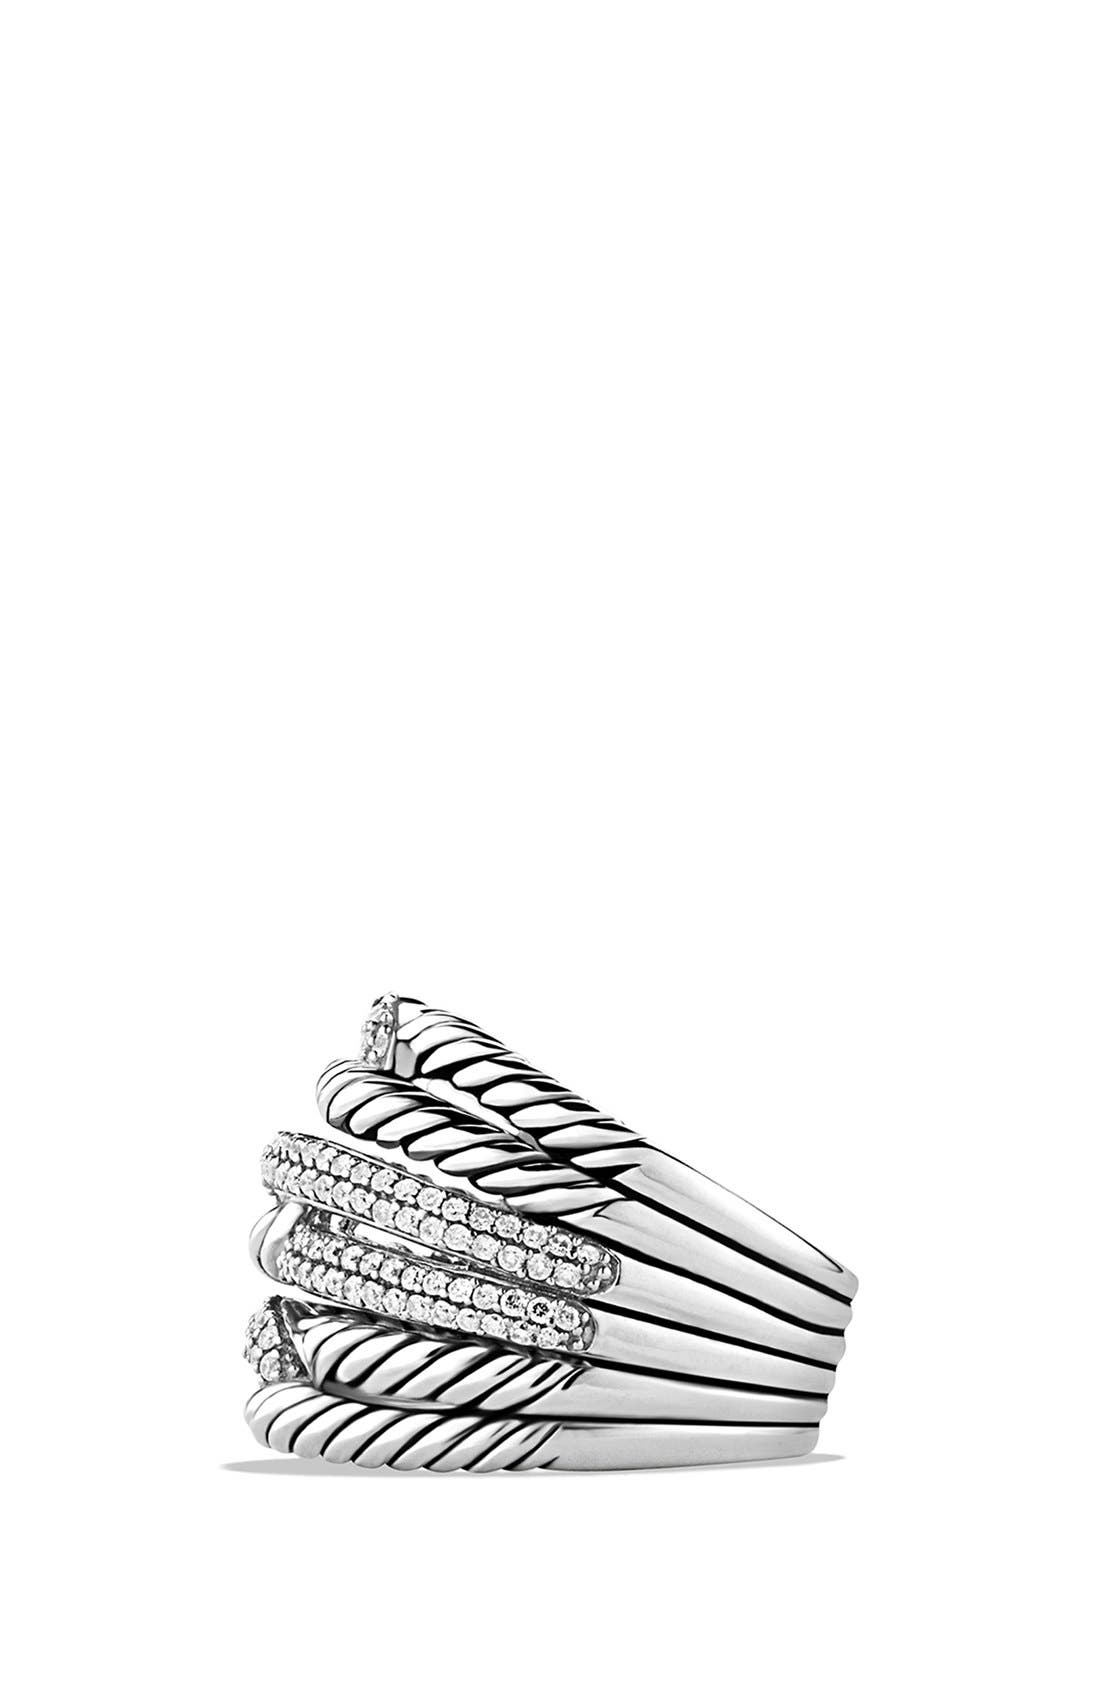 'Labyrinth' Triple-Loop Ring with Diamonds,                             Alternate thumbnail 3, color,                             DIAMOND